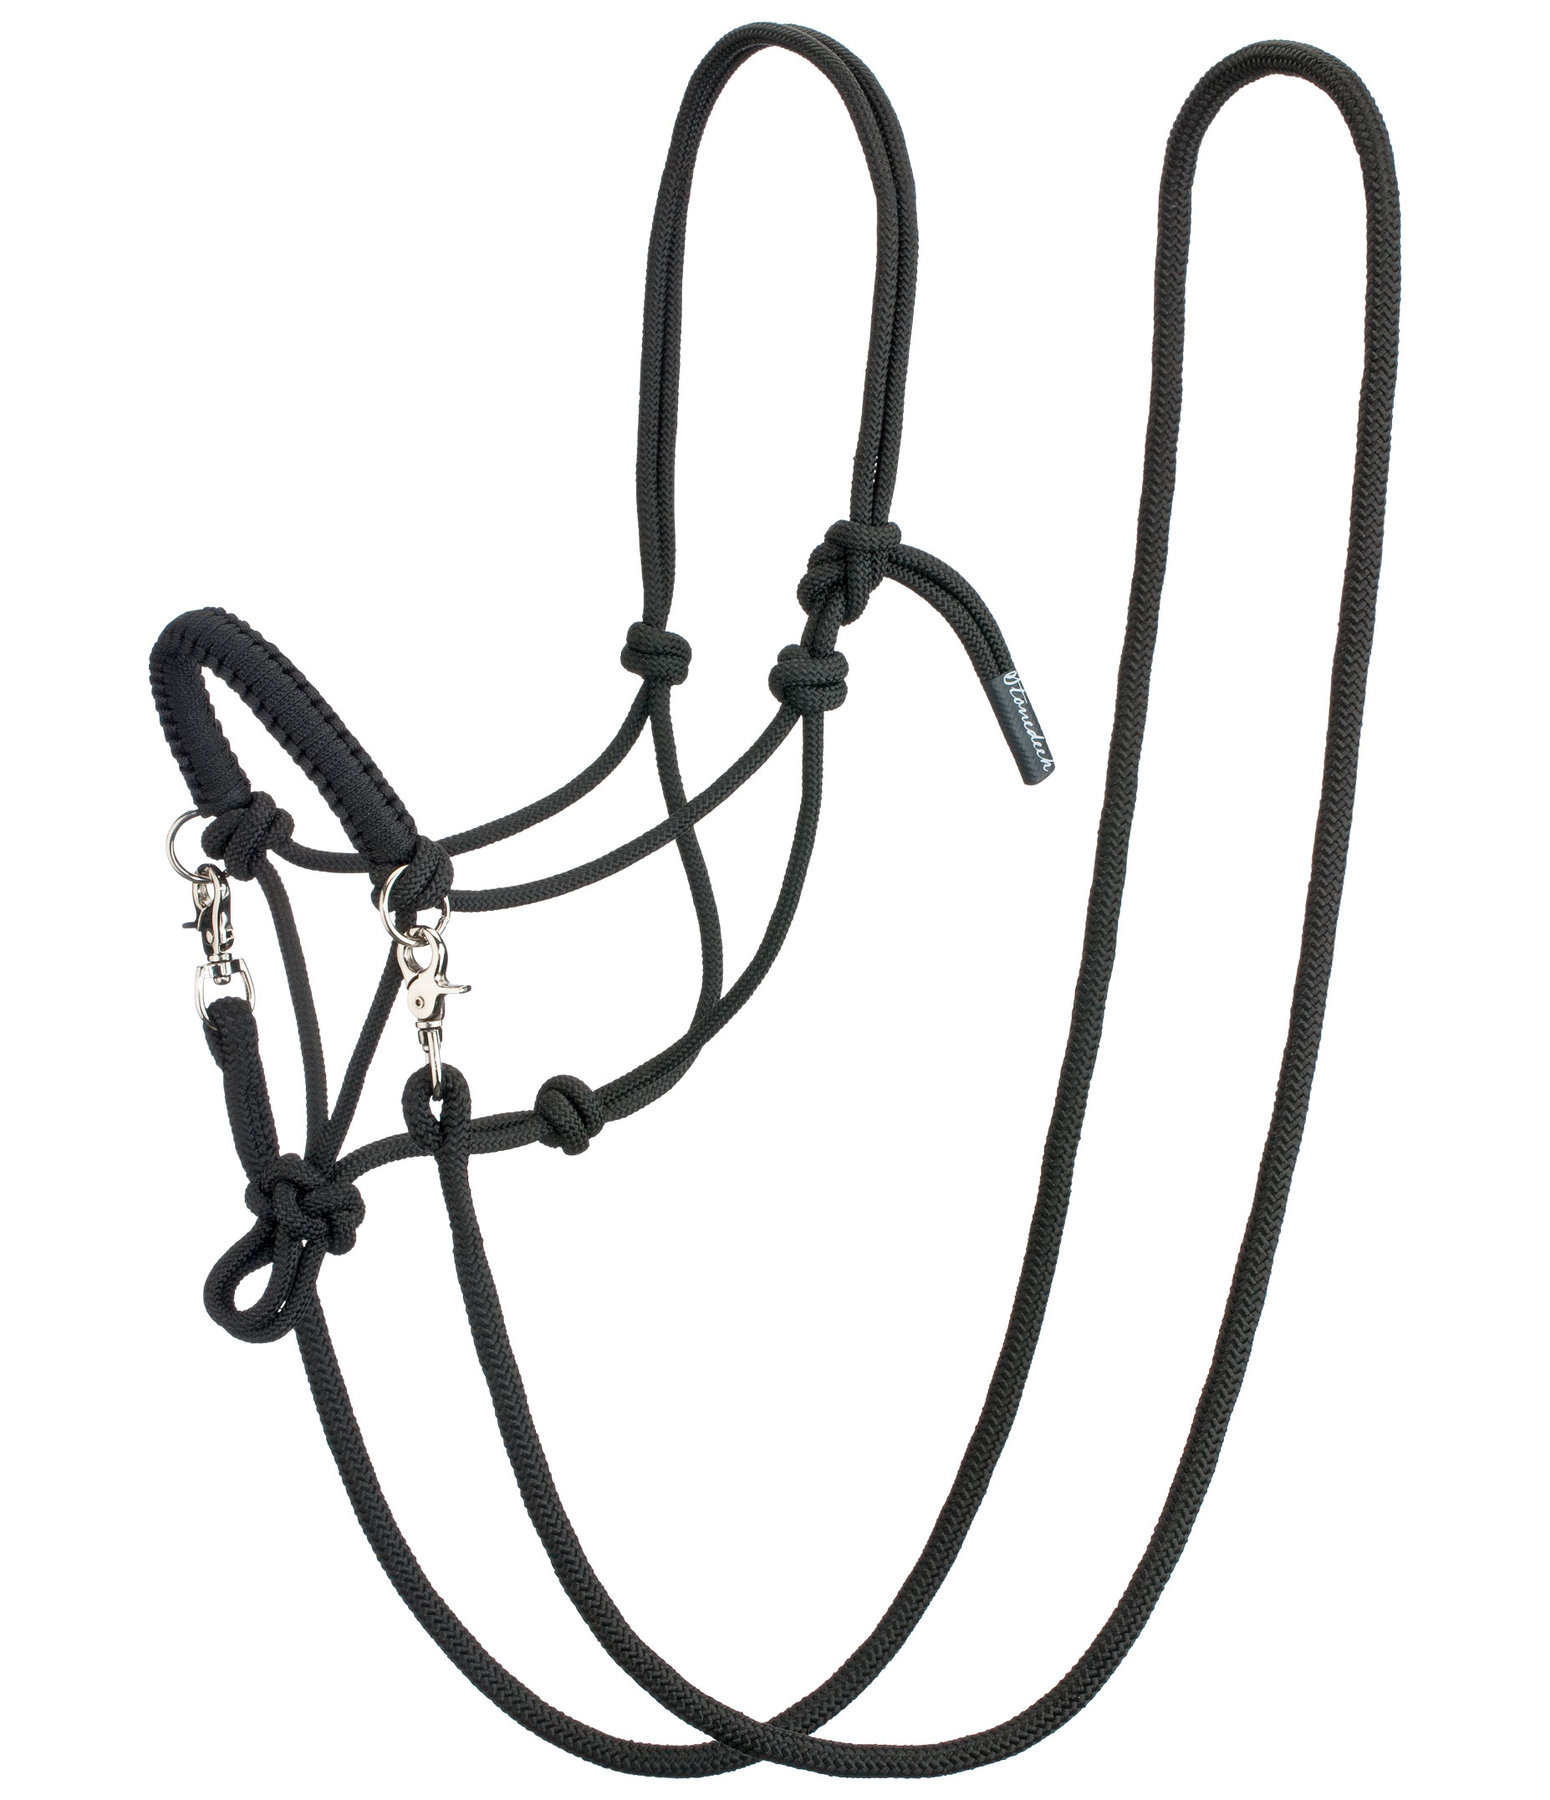 Rope Halter Set All-in-One